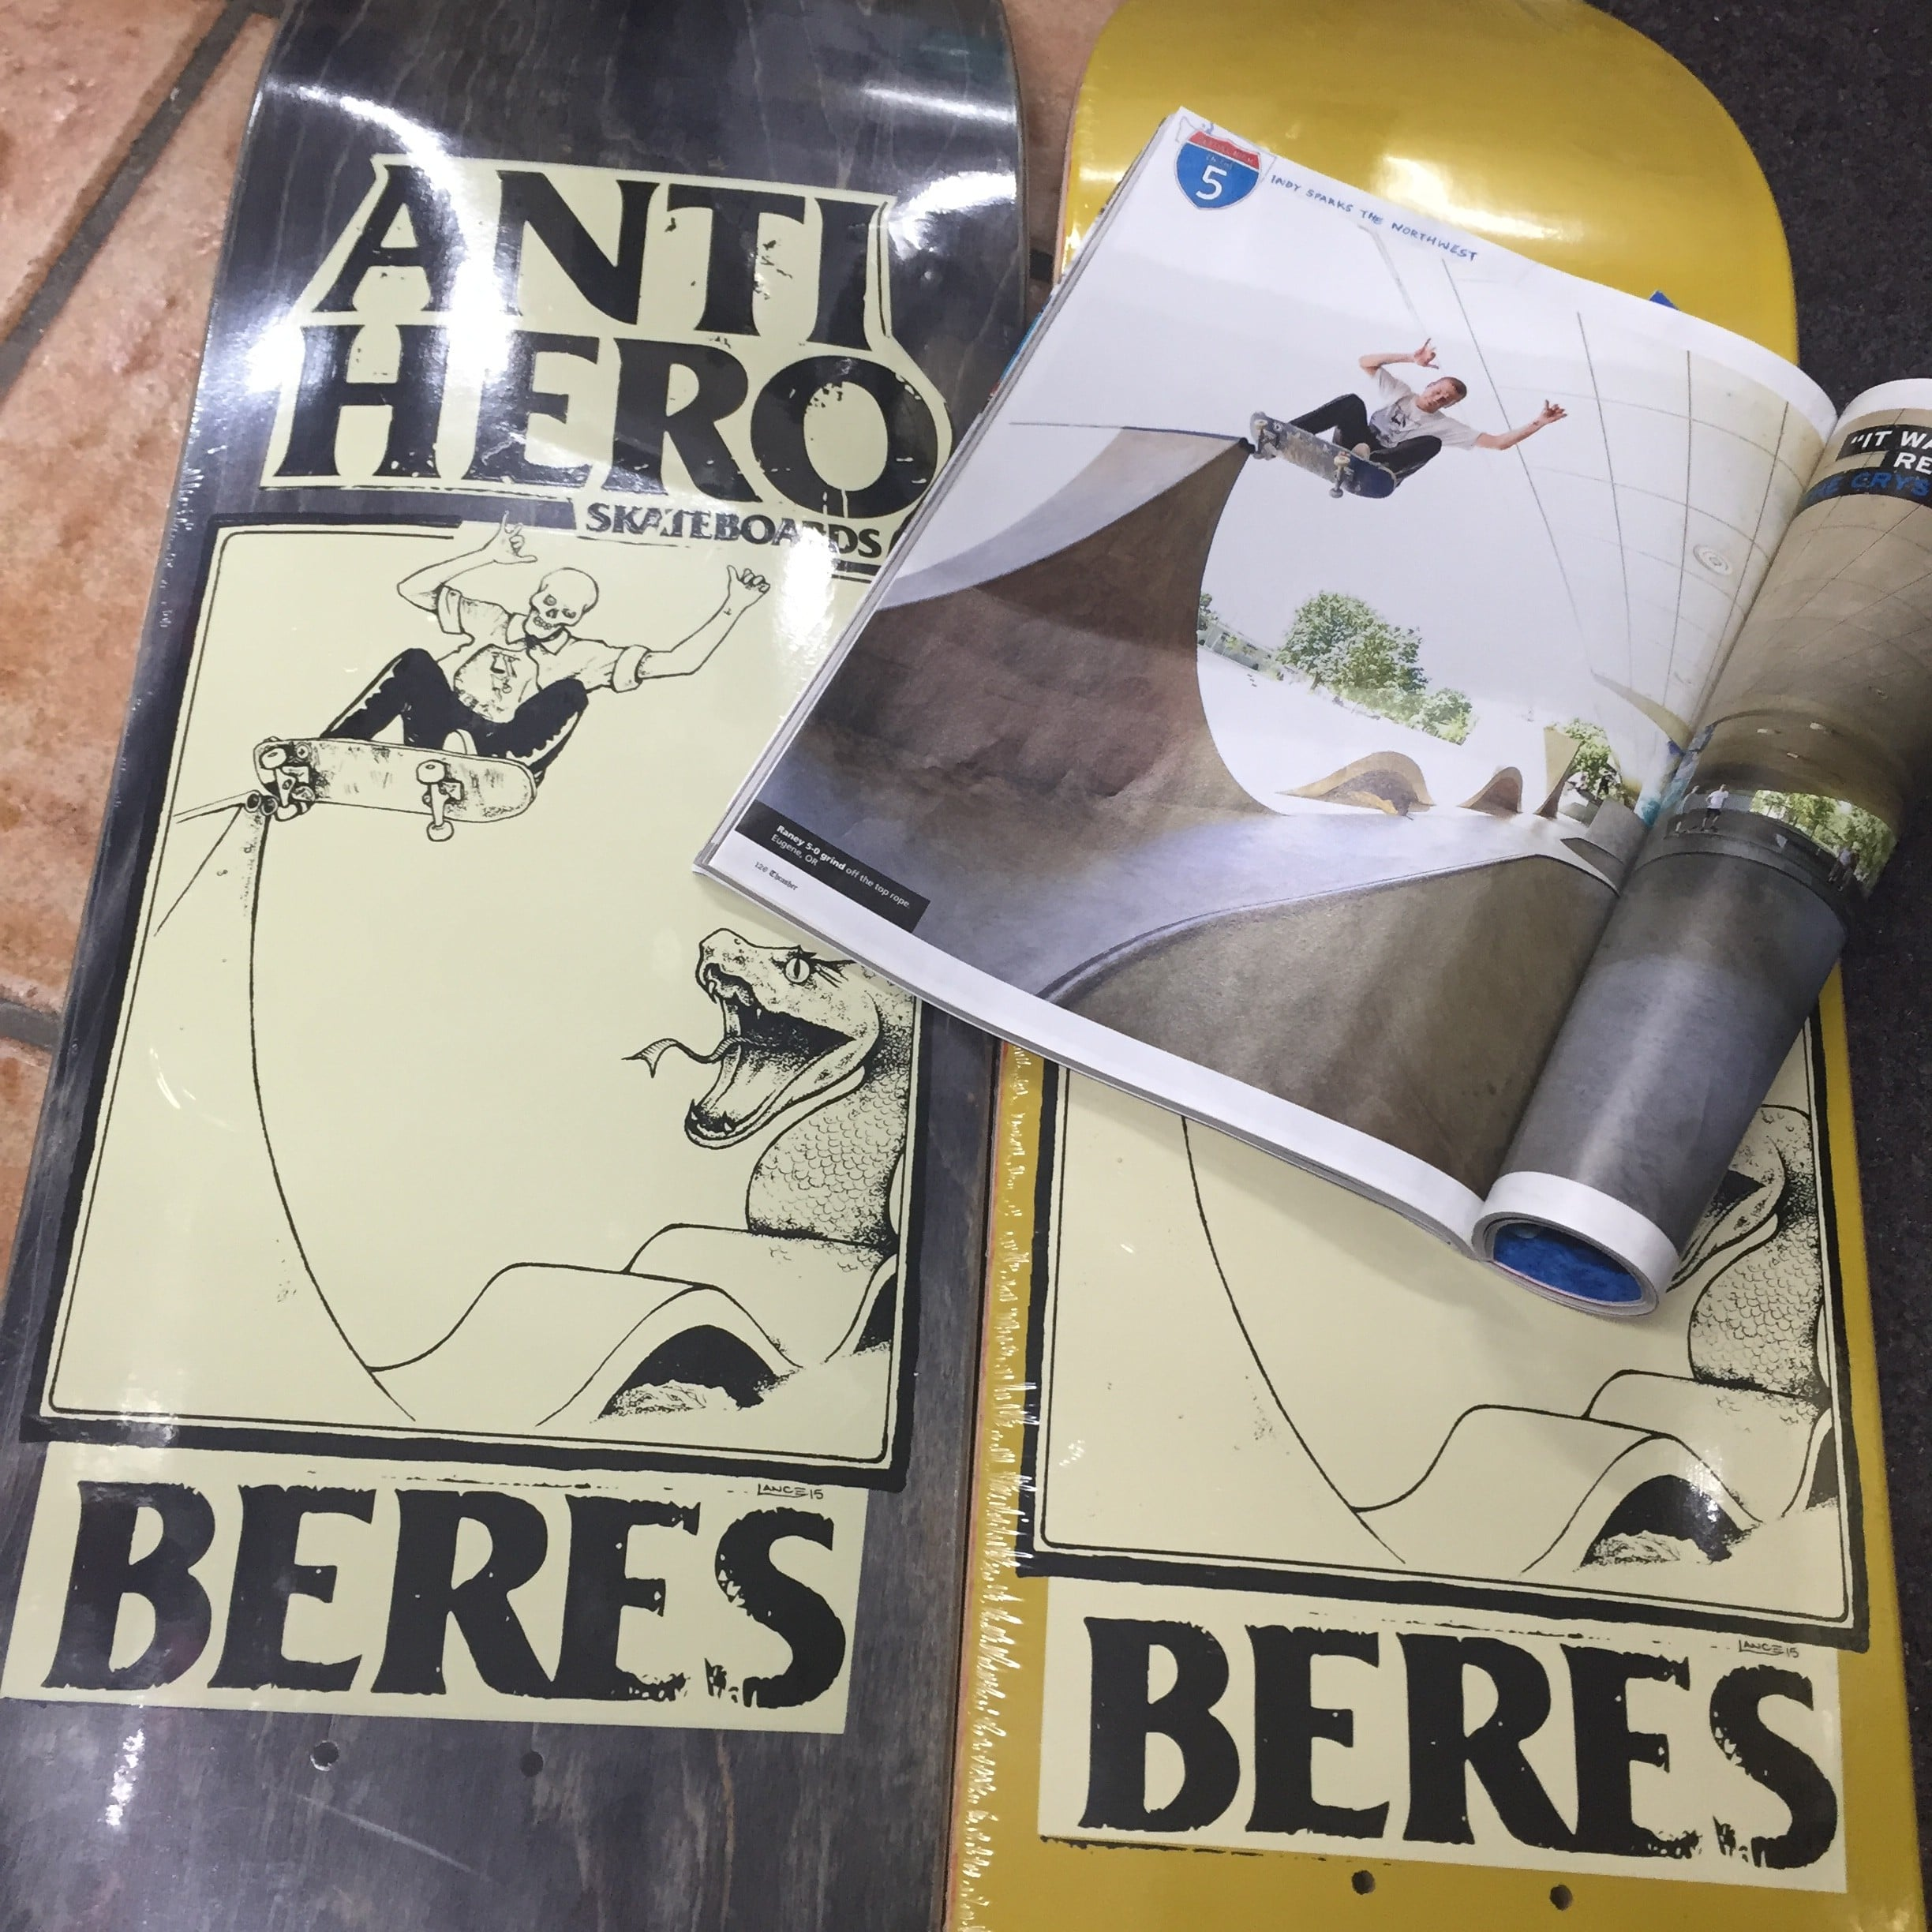 AntiHero Raney Beres pro model with artwork by Lance mountain